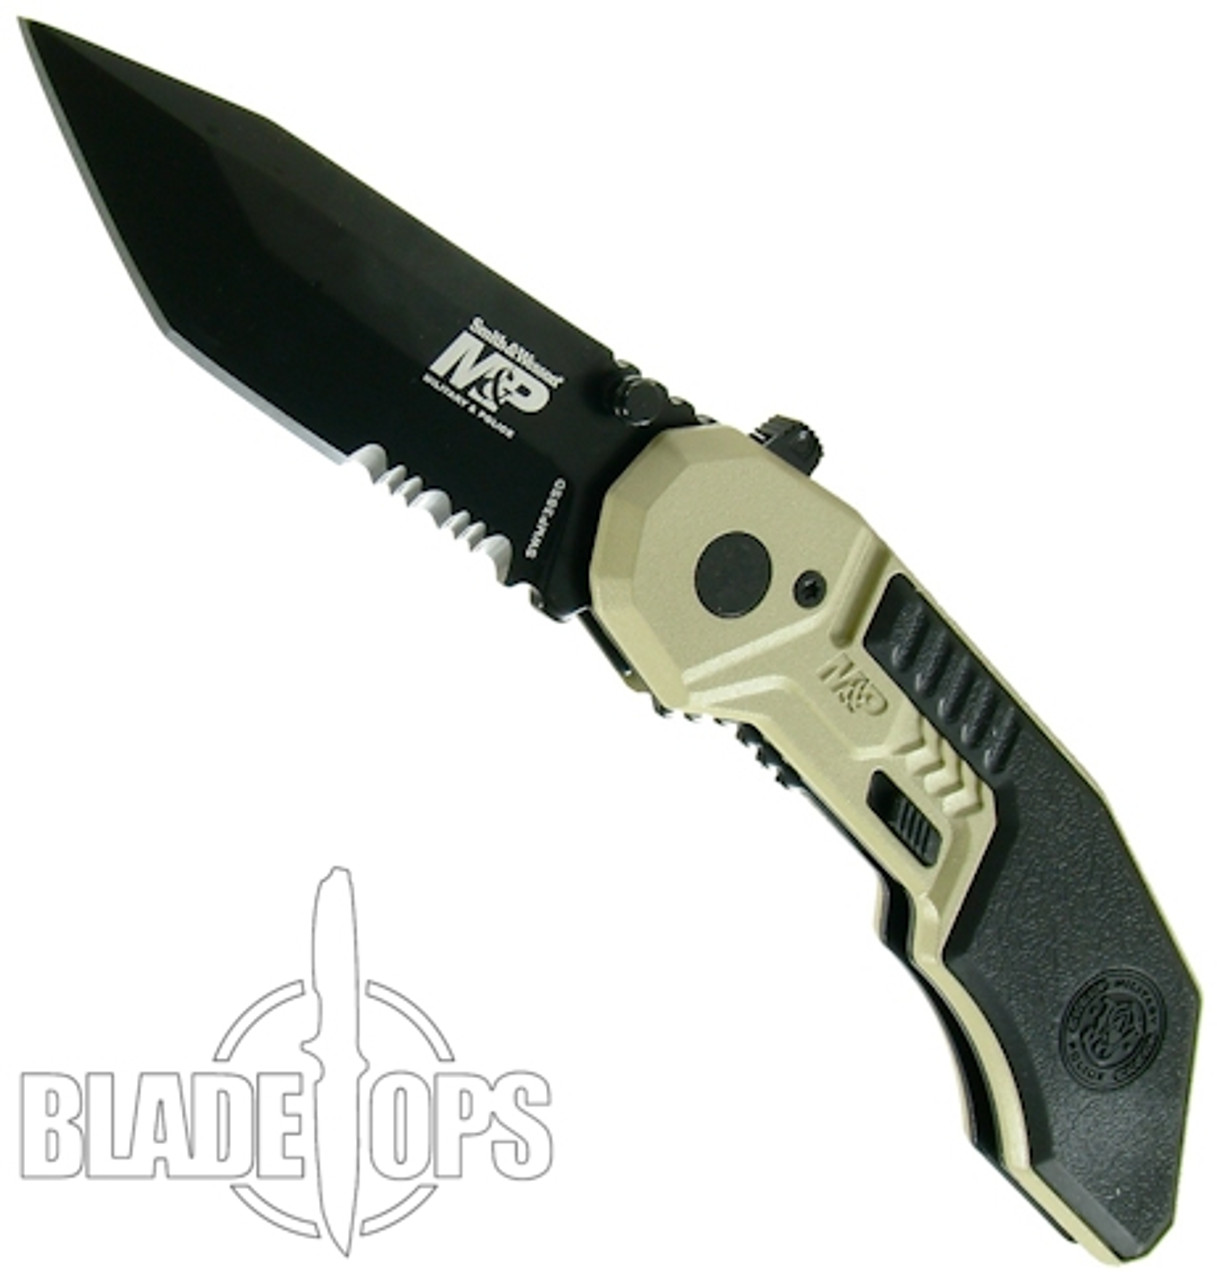 Smith & Wesson Military & Police MAGIC Assist Knife, Black Combo Blade, Tan Handle, SWMP3BSD